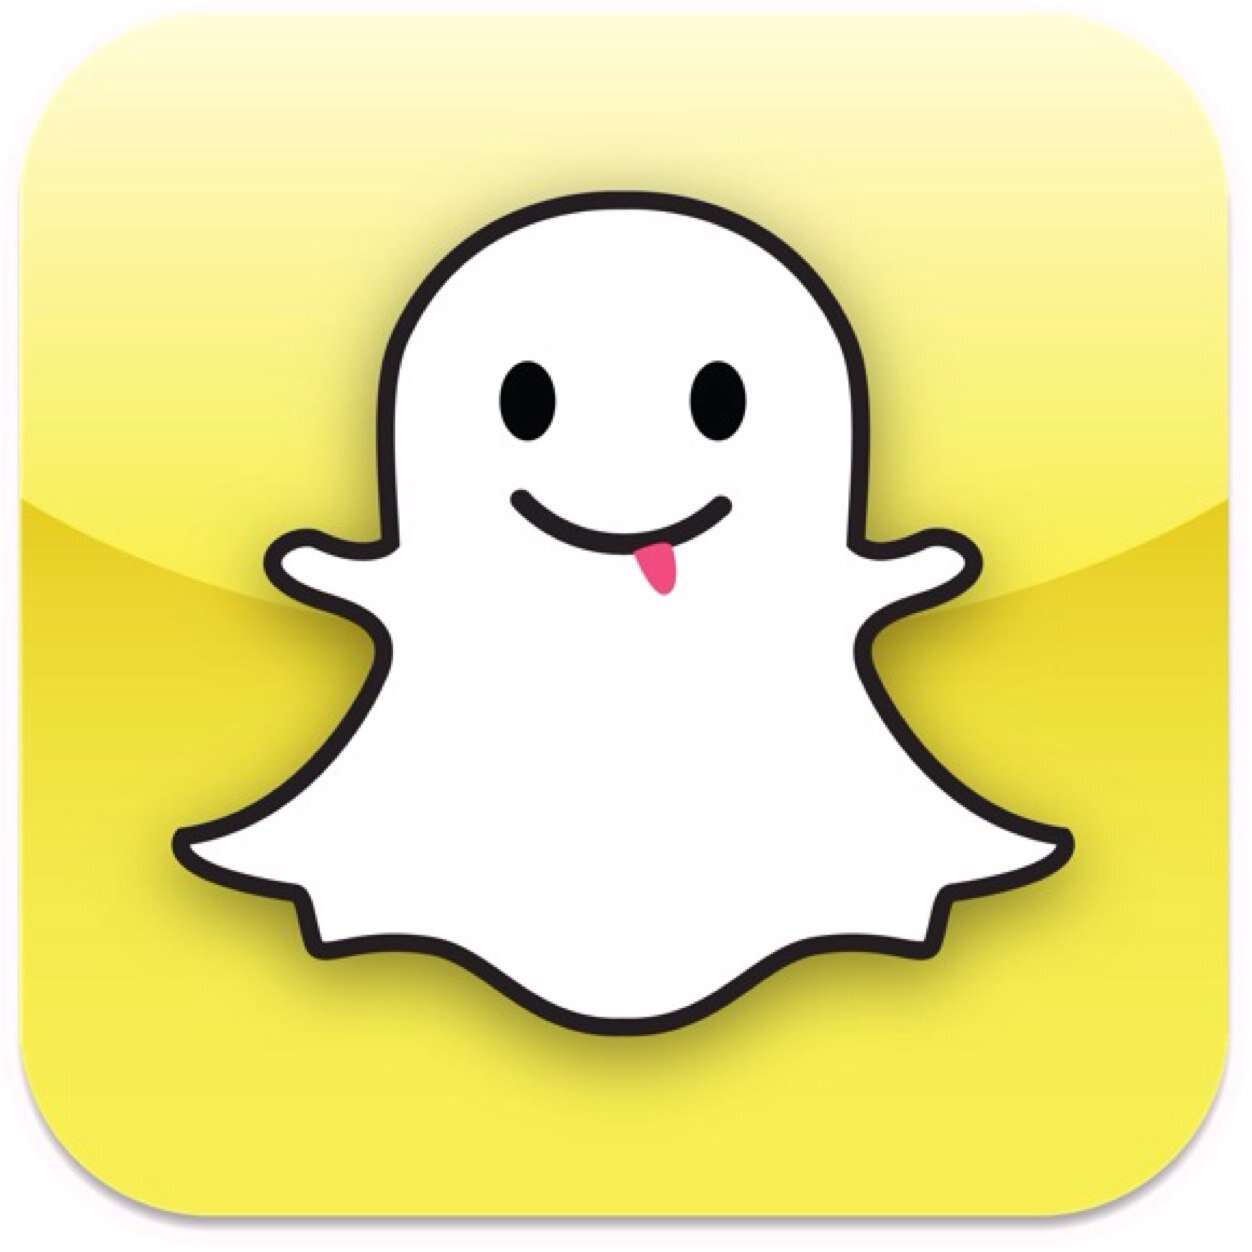 rencontre snapchat rencontre nord lille